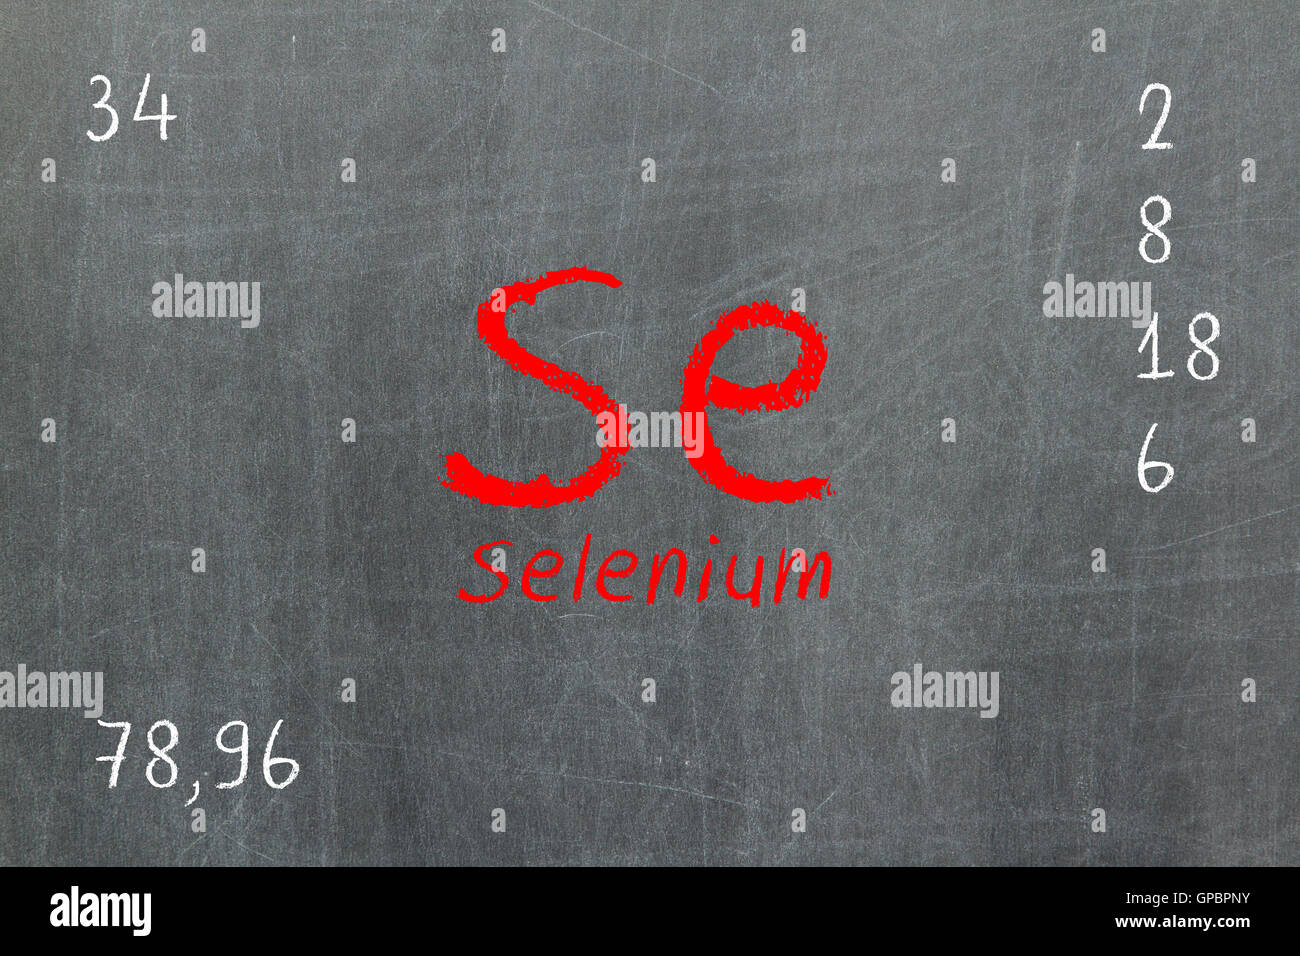 Isolated blackboard with periodic table selenium stock photo isolated blackboard with periodic table selenium gamestrikefo Images